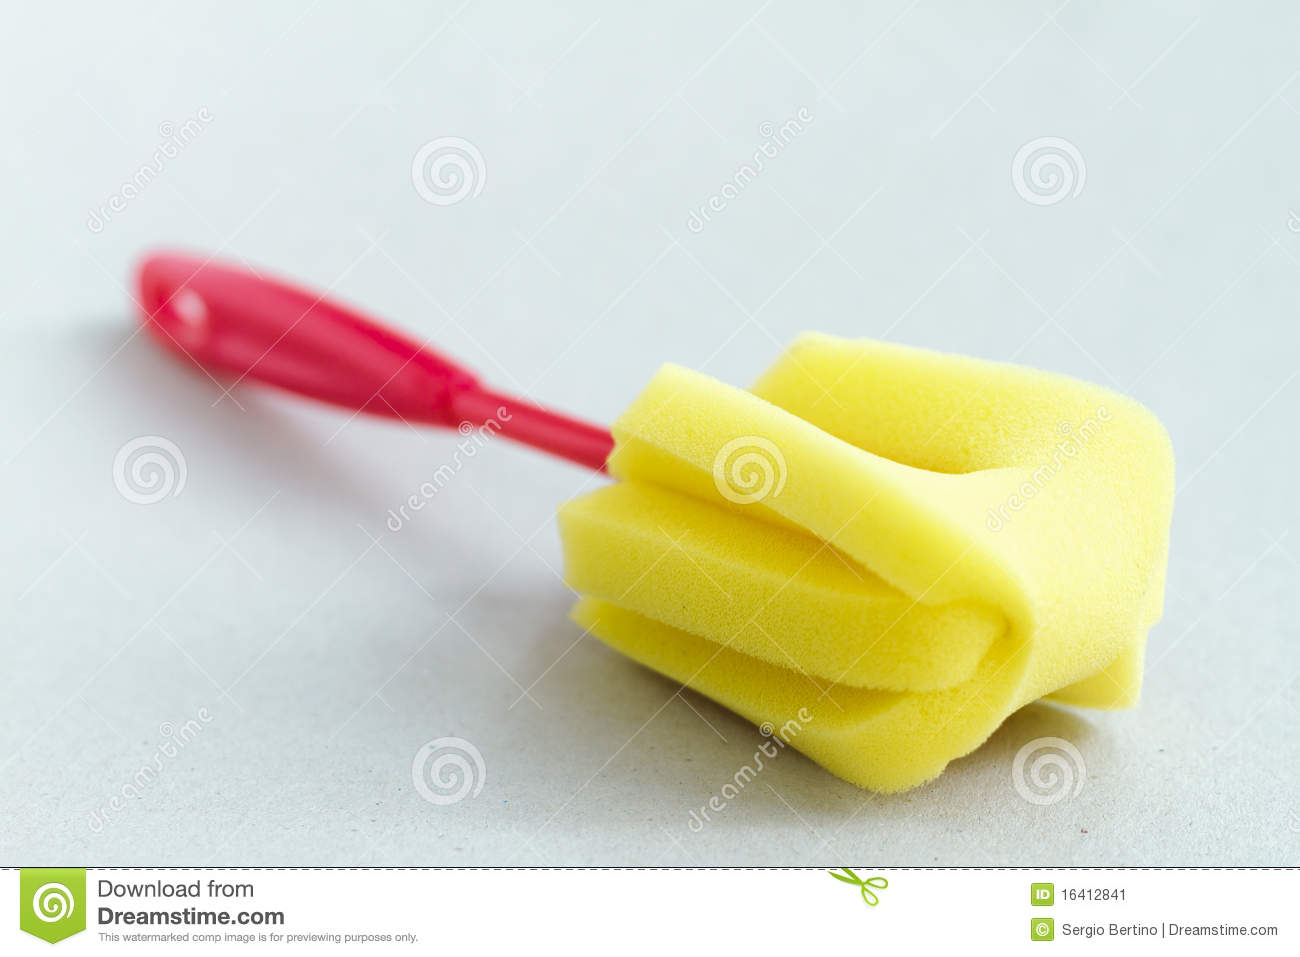 how to clean a natural sponge